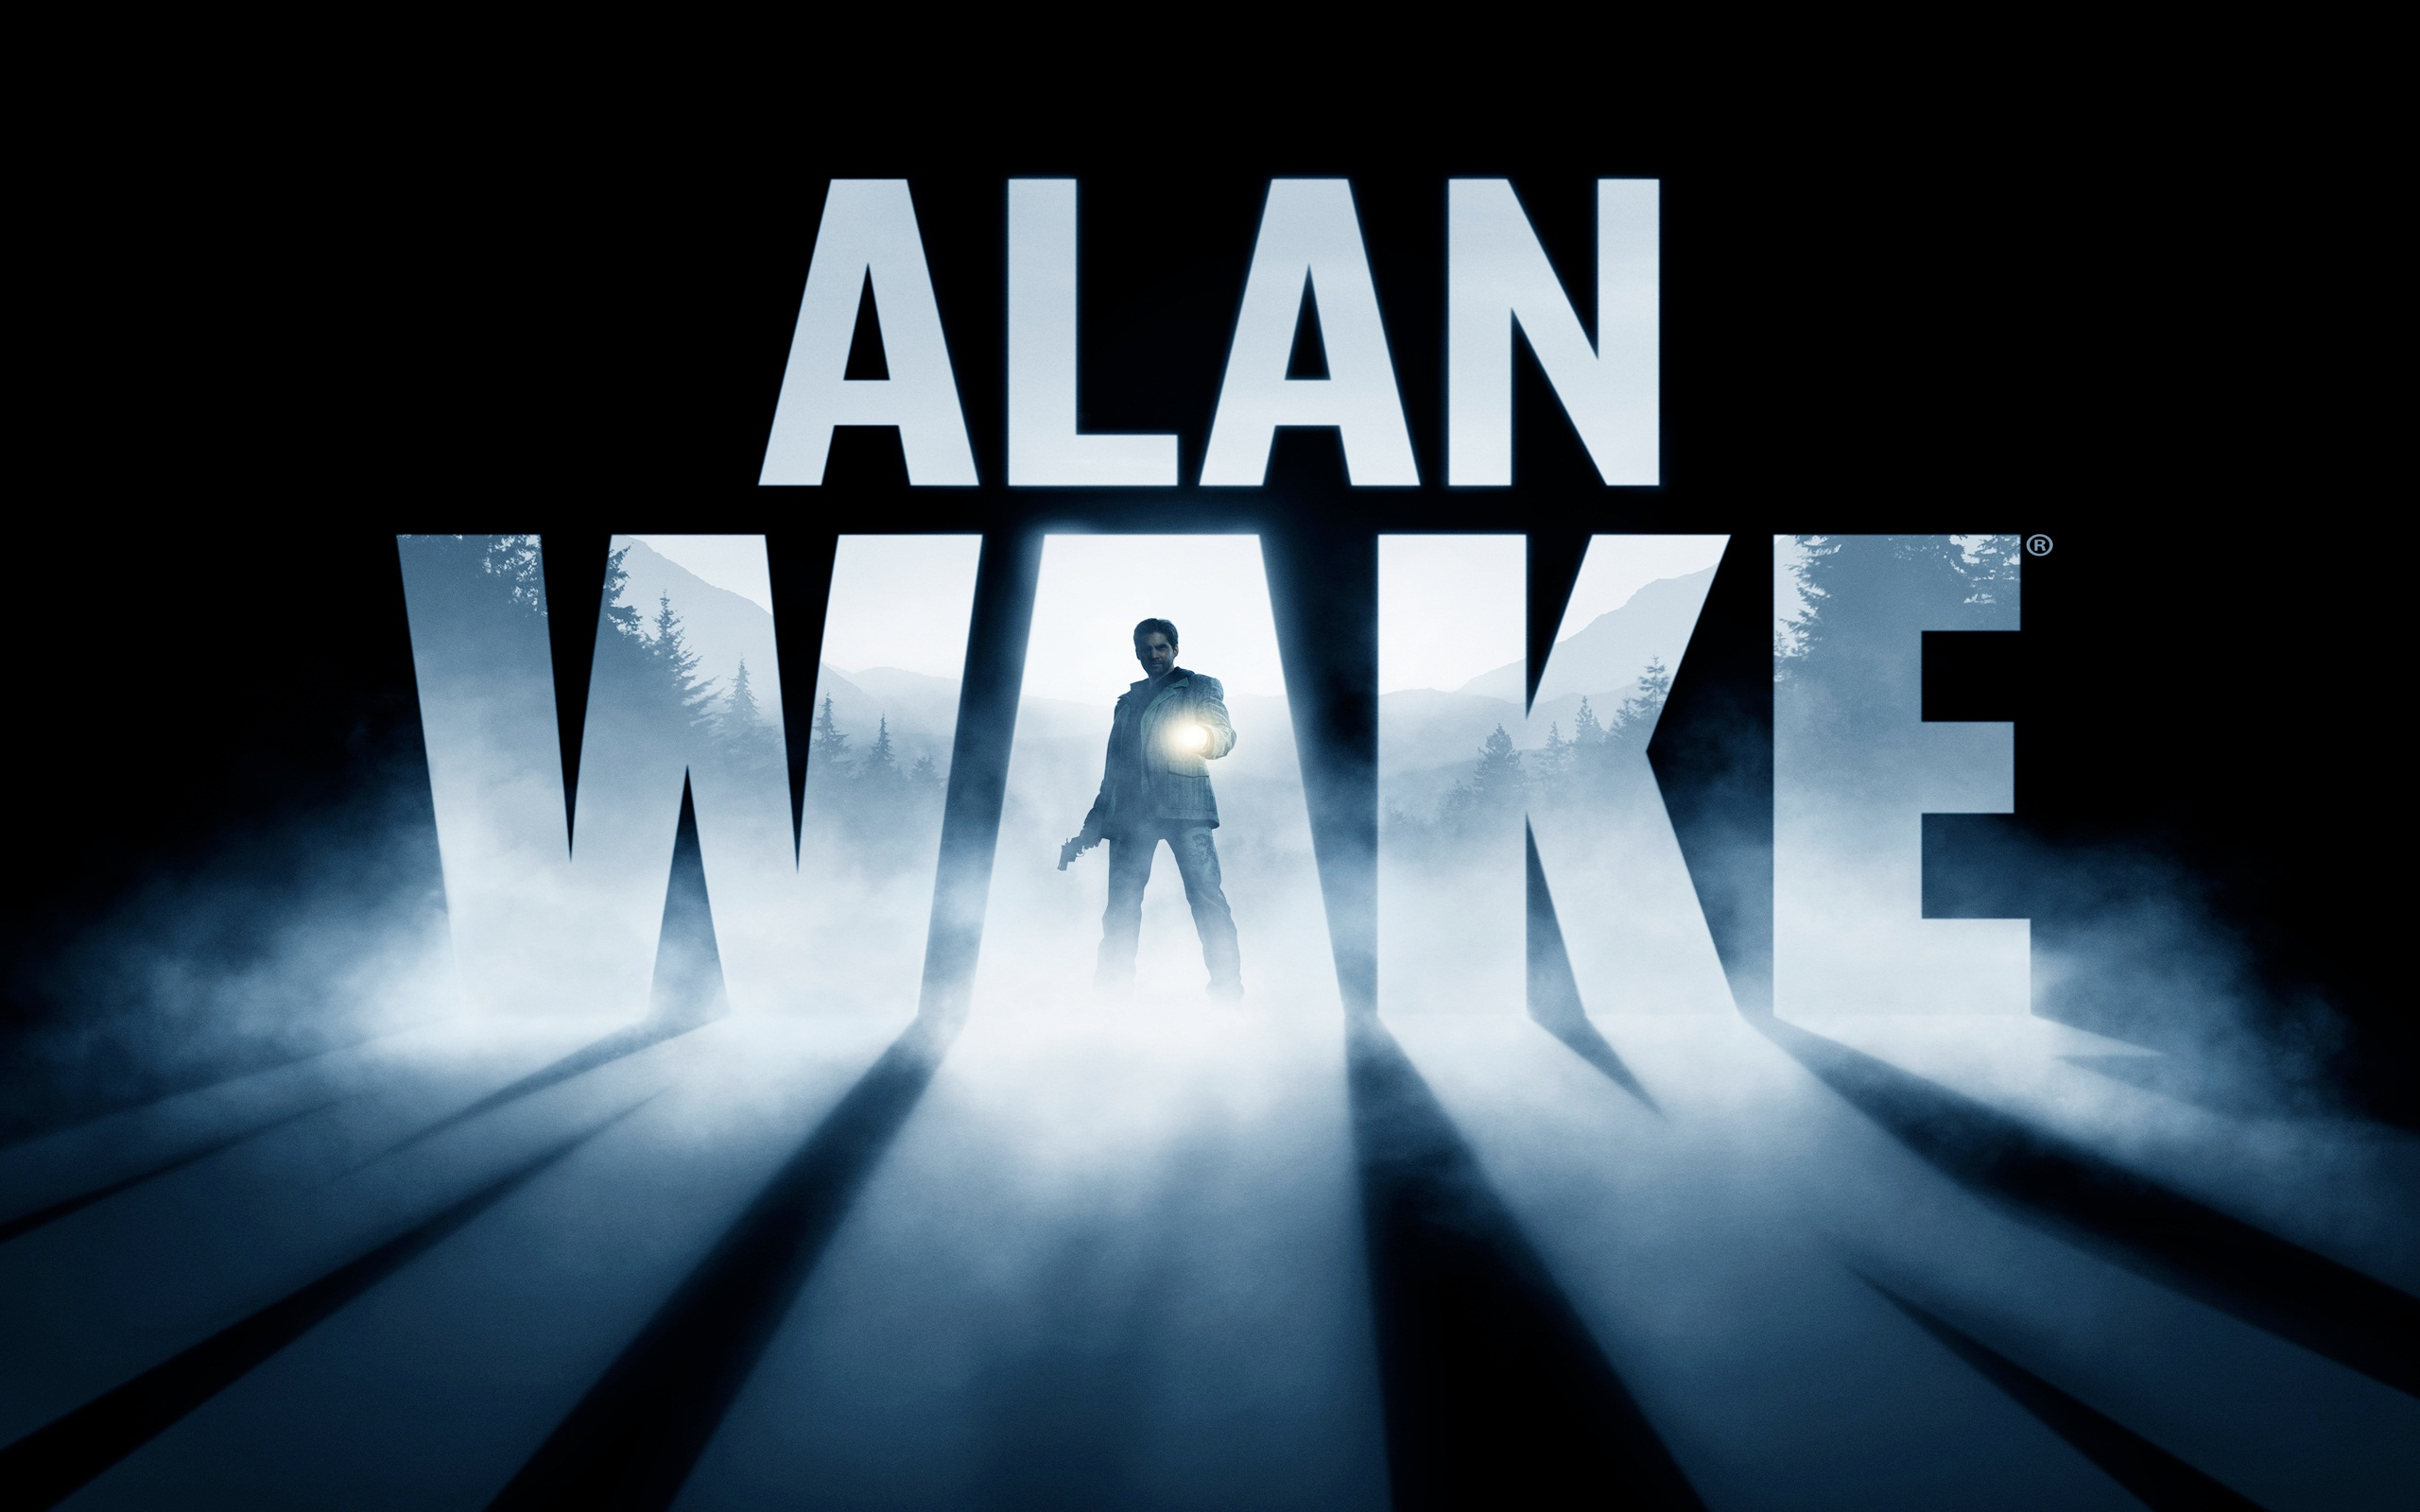 alan_wake_game-wide